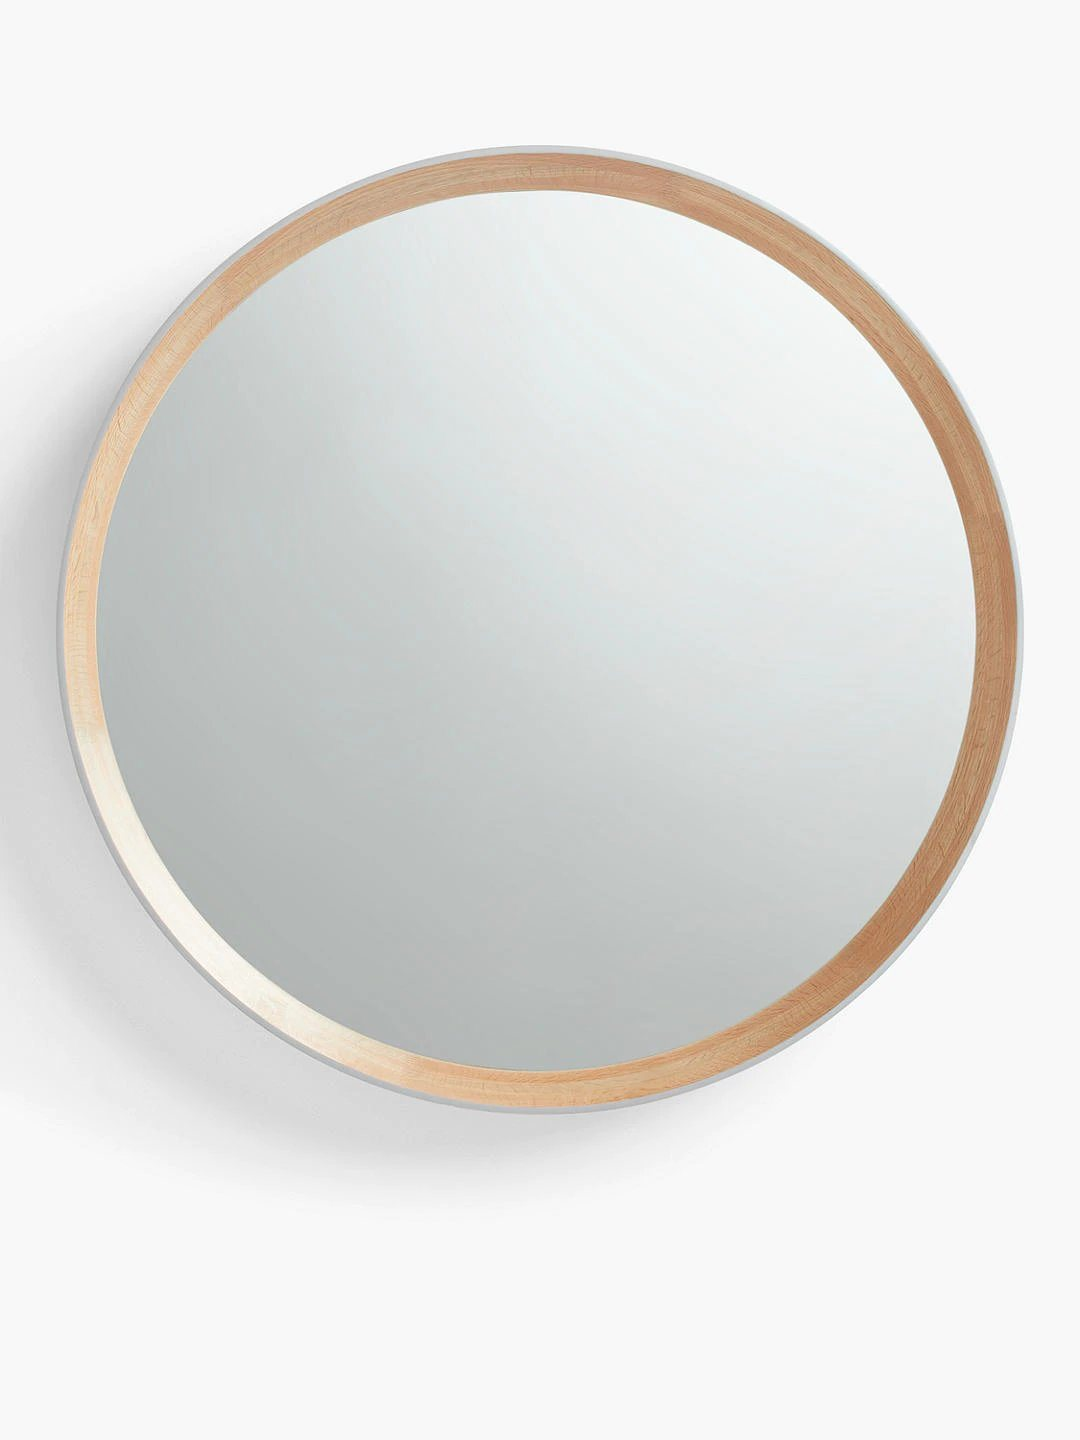 China Deep Frame Round Wooden Framed Mirror China Frame Mirror And Wall Mirror Price